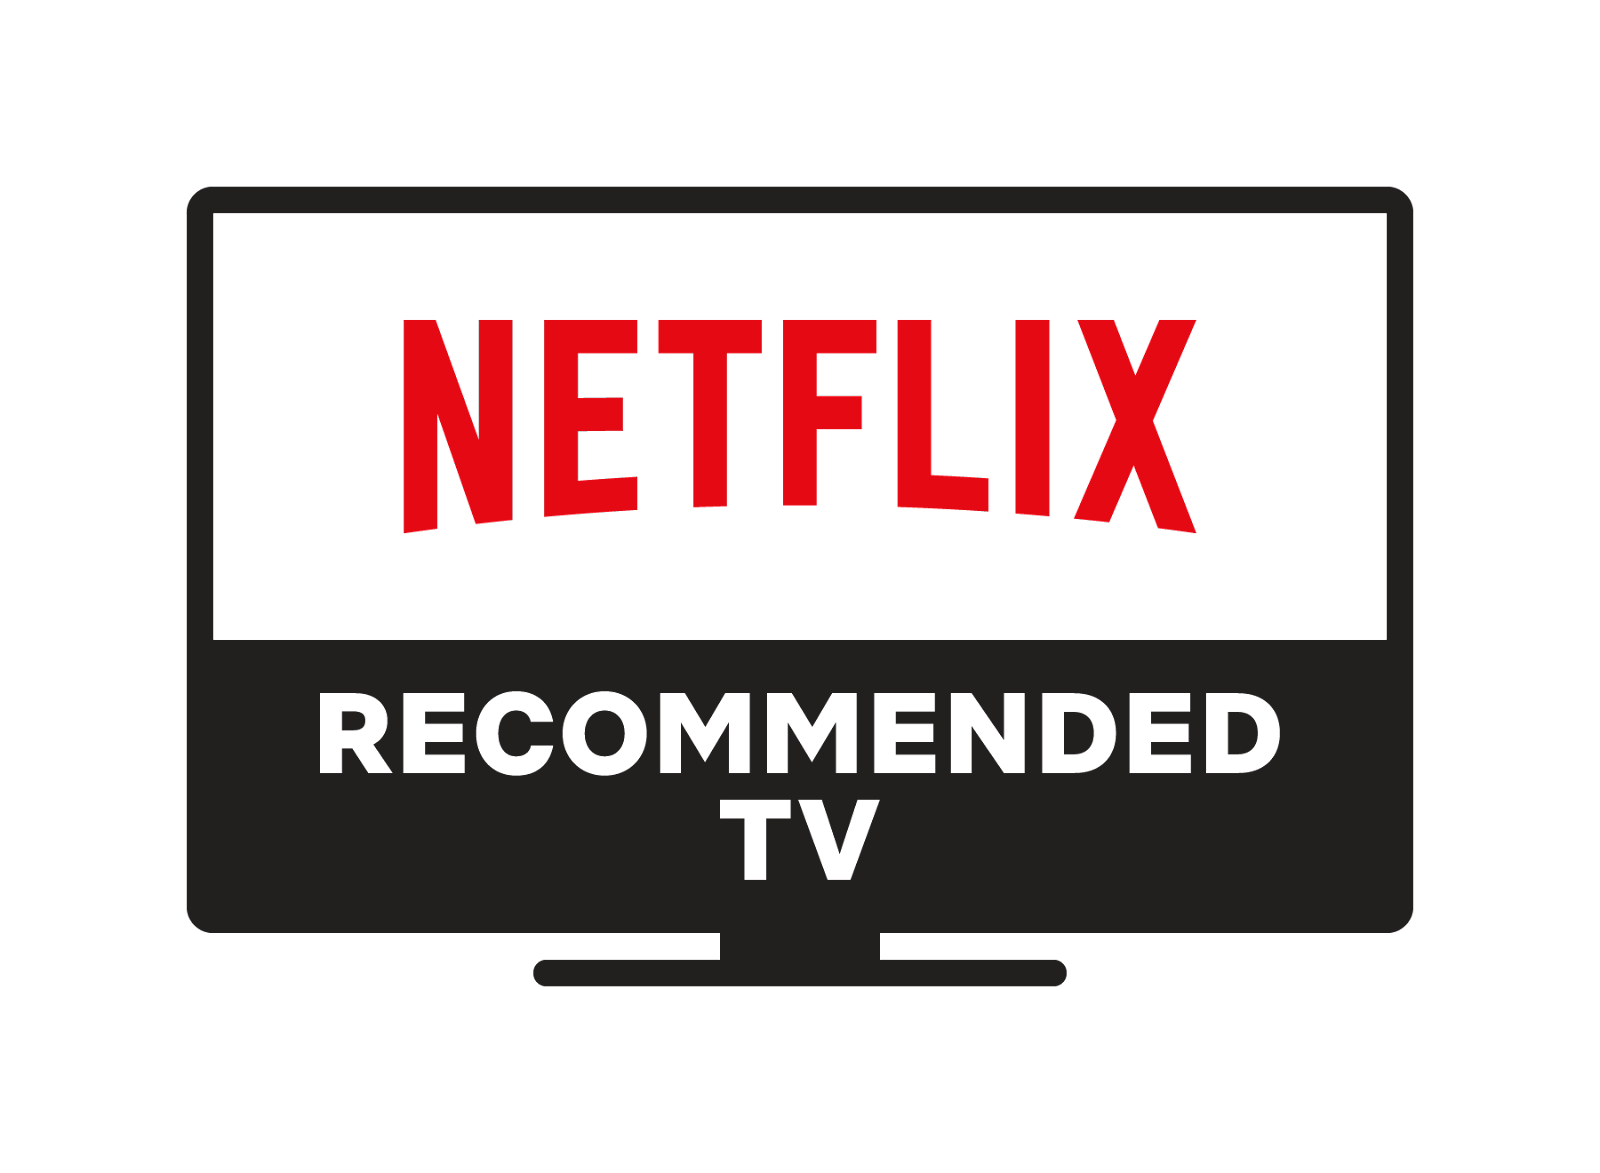 2020 Netflix Recommended TVs - Image 1